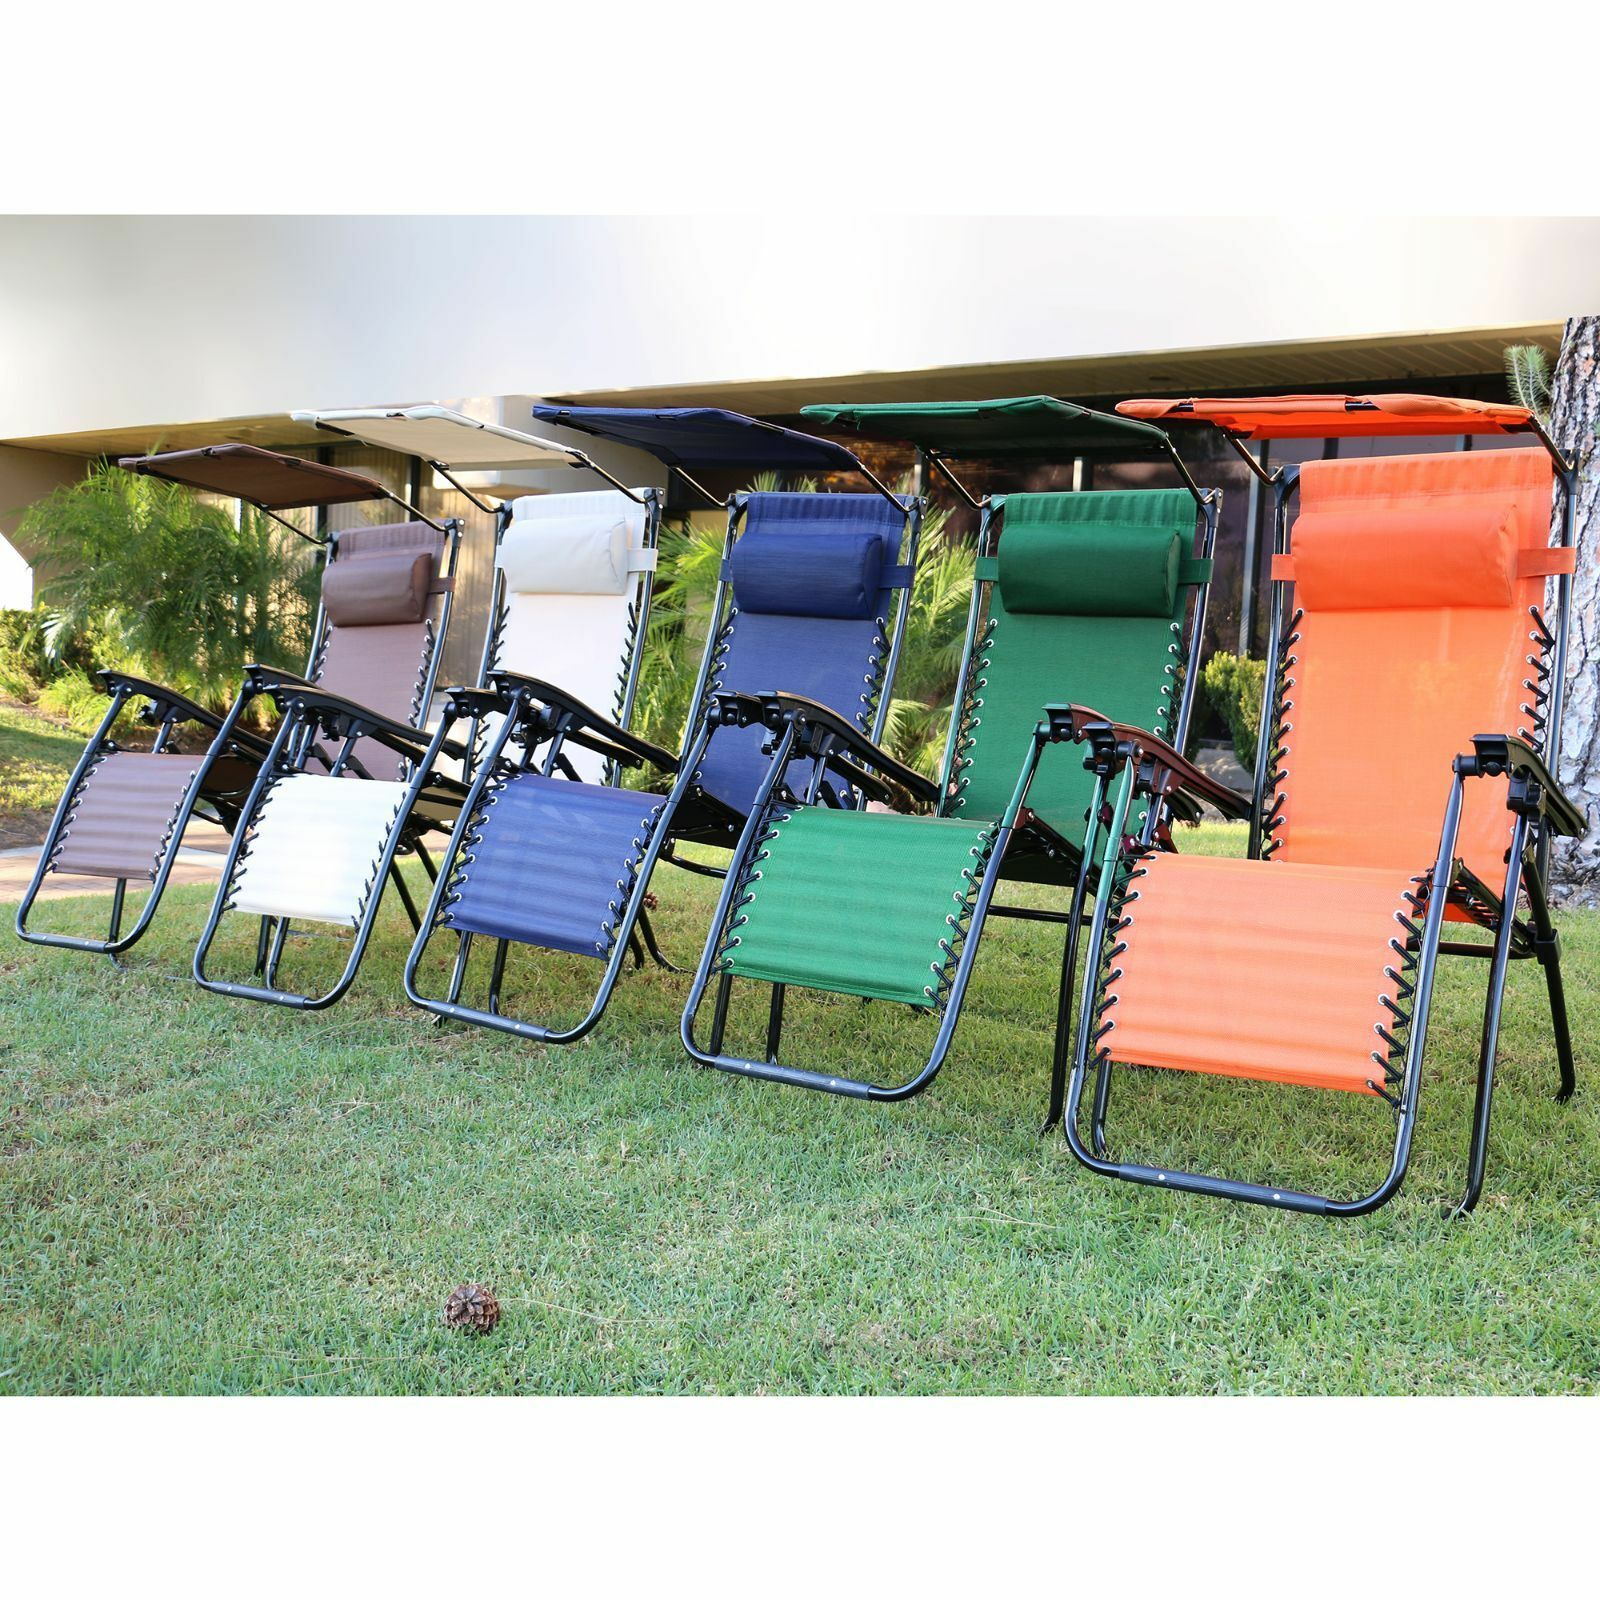 2pc lounge patio chairs outdoor yard zero gravity folding portable chaise chair ebay - Outdoor mobel lounge ...